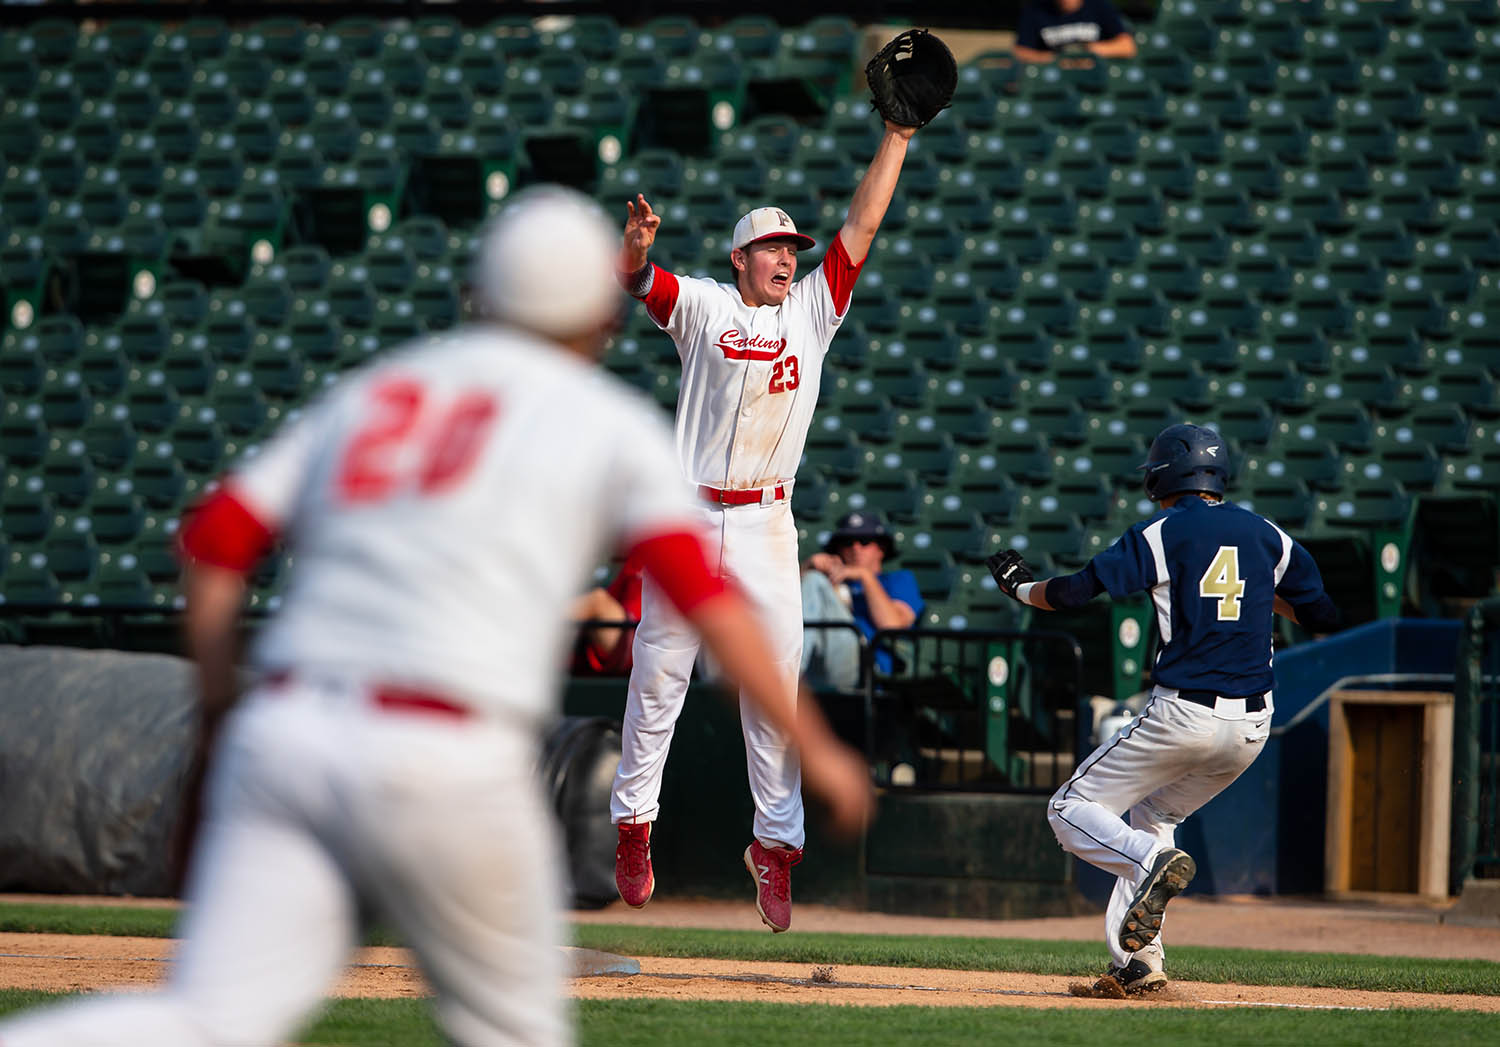 Pleasant Plains' Cam Furbeck (23) is unable to leap up to catch the throw form Pleasant Plains' Drew Washam (20) on a hit from Teutopolis' Justin Hardiek (4) in the second inning during the IHSA Class 2A State Championship game at Dozer Park, Saturday, June 1, 2019, in Peoria, Ill. [Justin L. Fowler/The State Journal-Register]